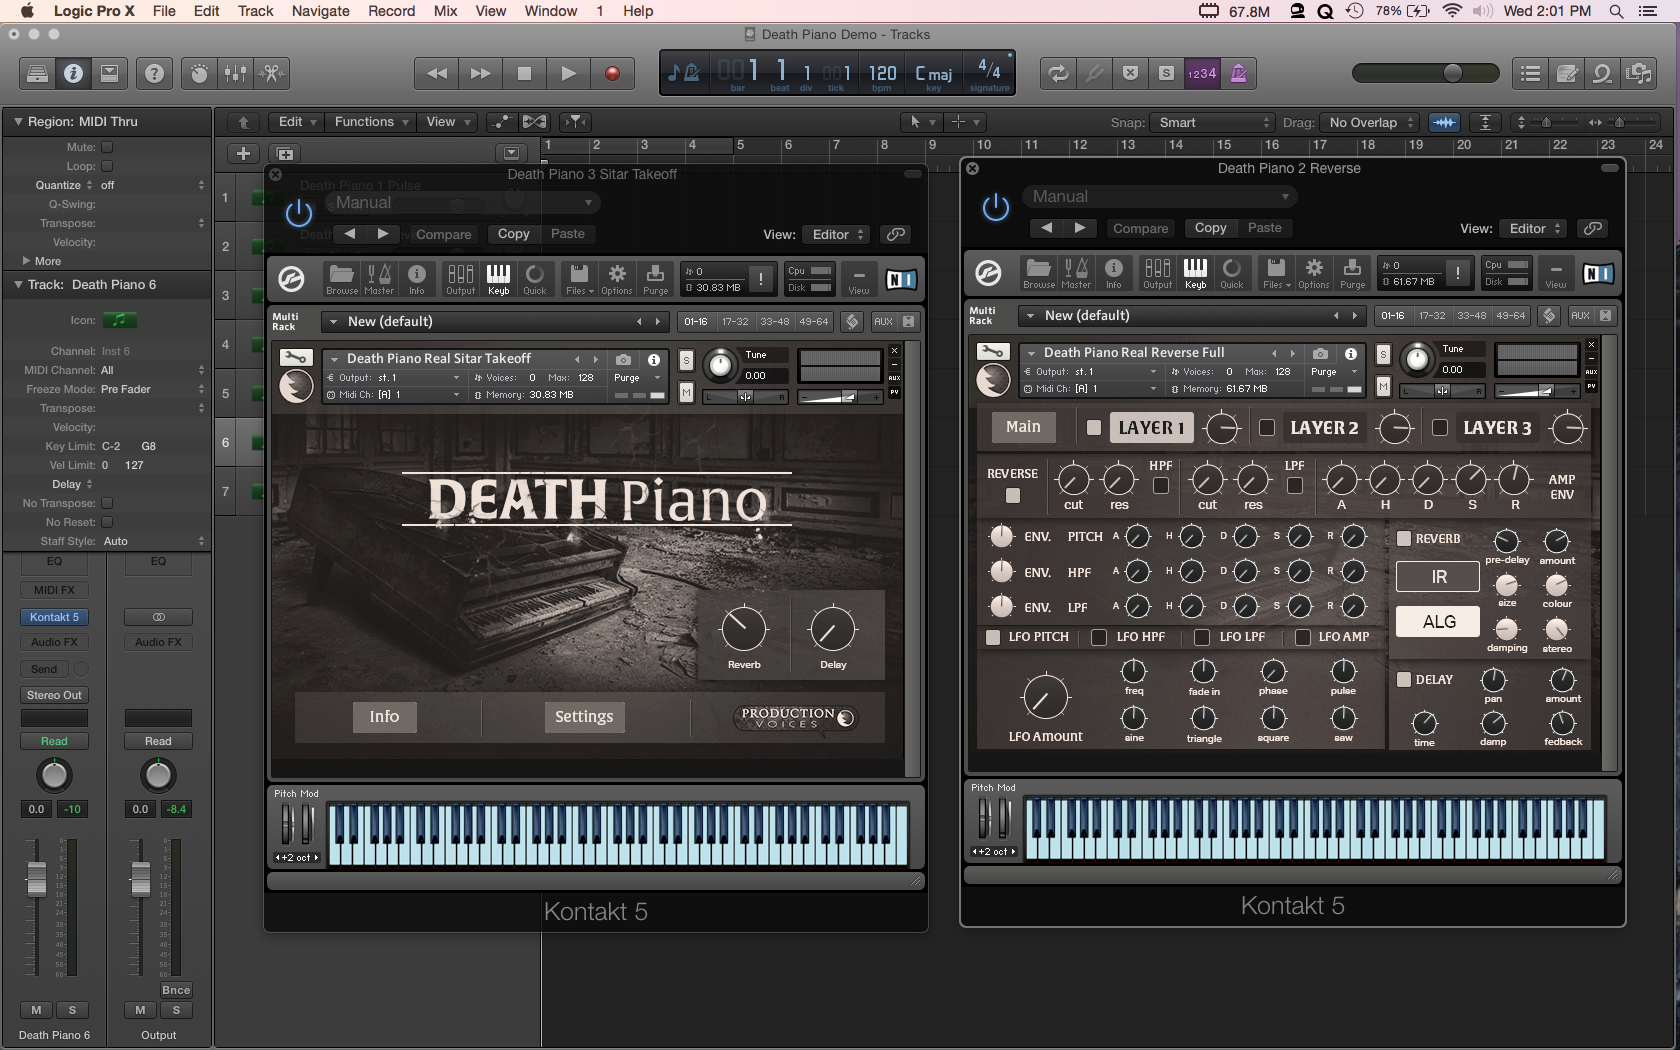 Birth of Death Piano